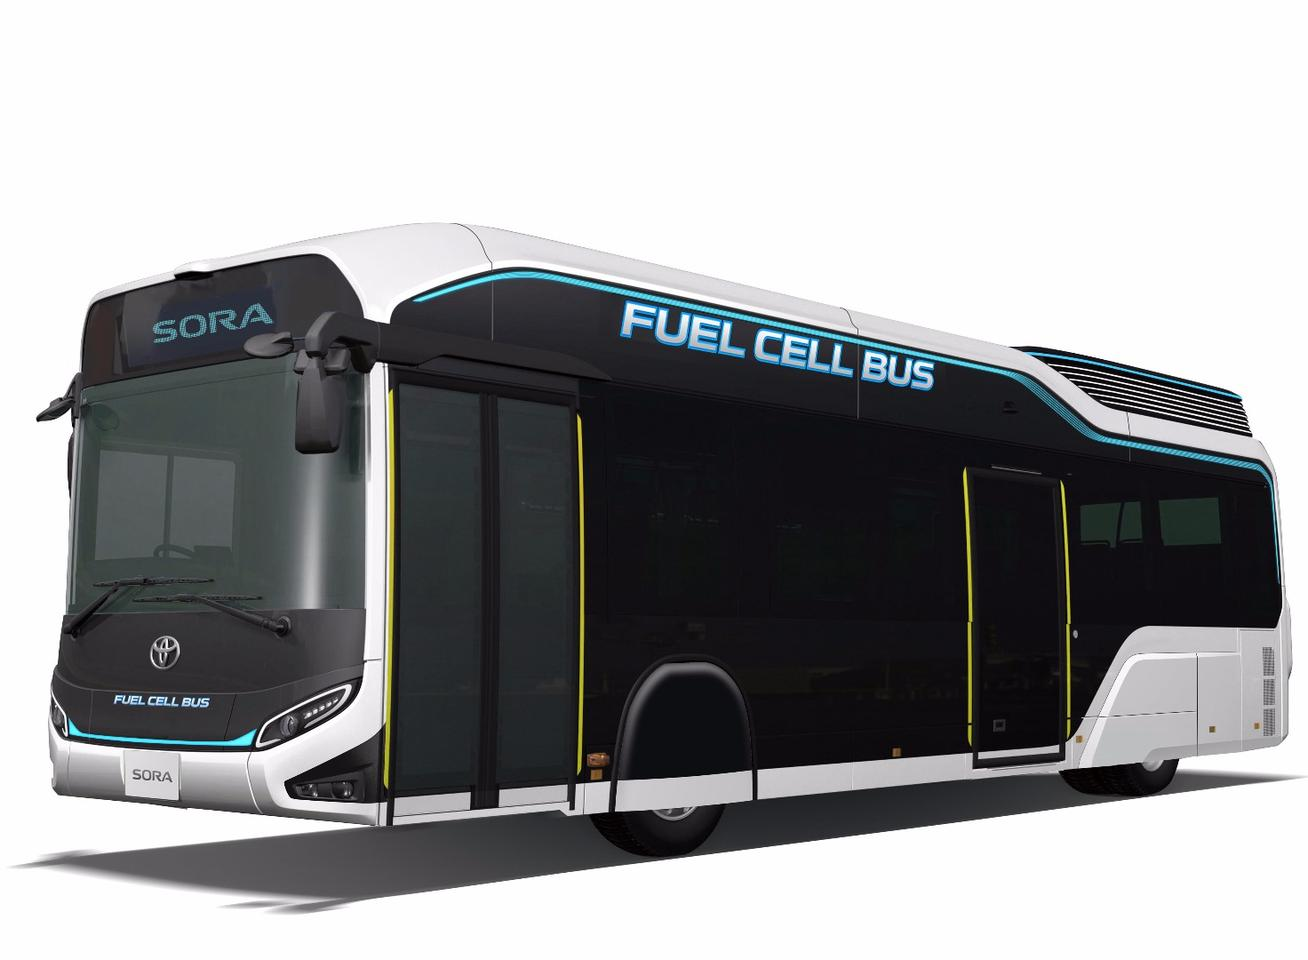 In addition to its powertrain for people-moving, the Sora fuel cell bus is also capable of outputting power during emergencies or disasters